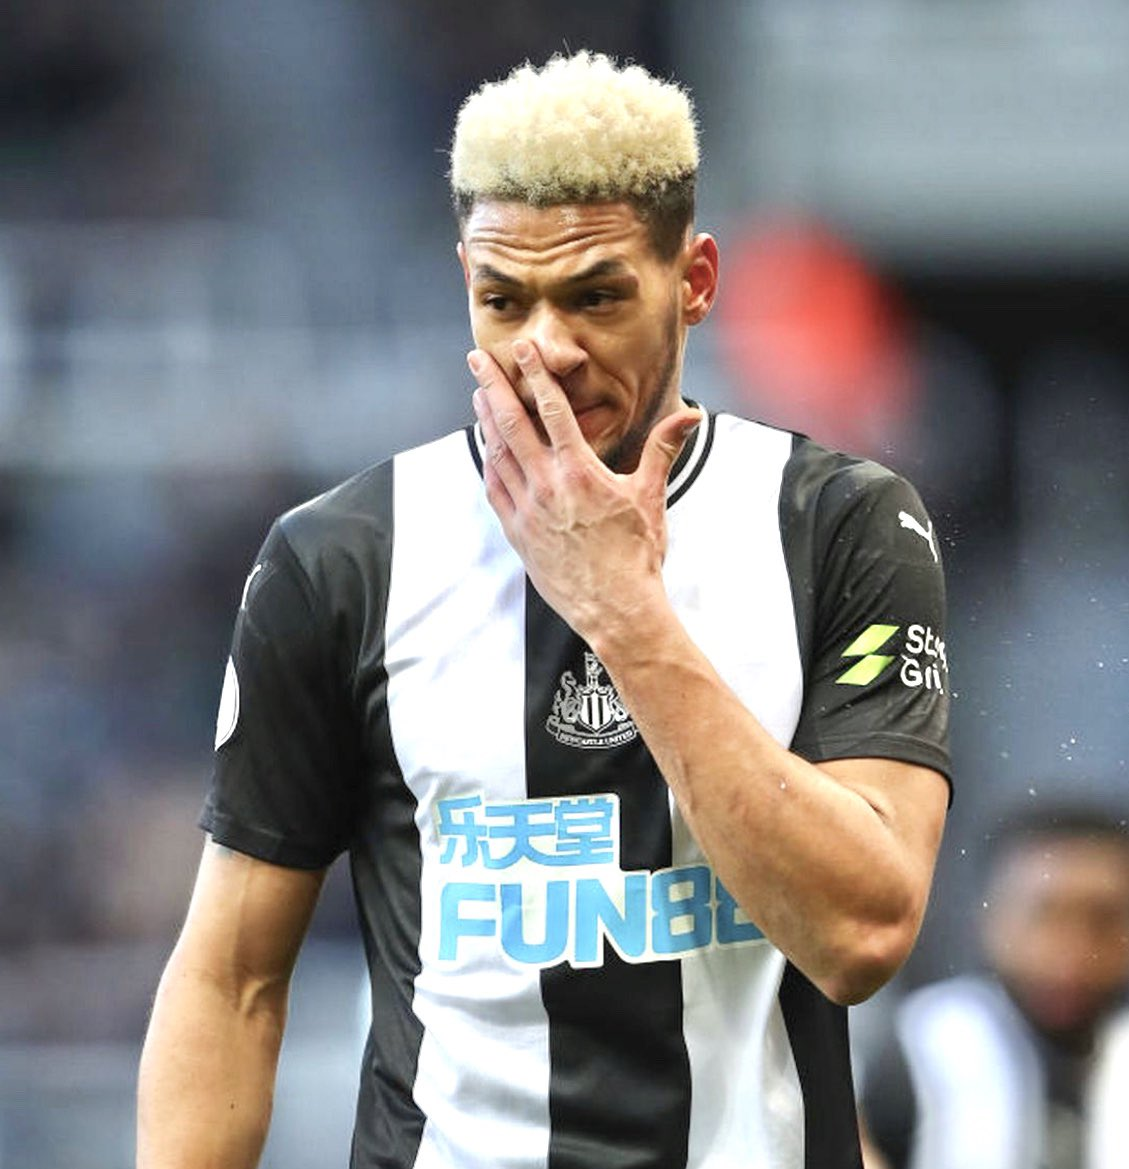 New to FT , please RT and help me gain a following #NUFC #gainSZN pic.twitter.com/mhHXQLtTQz